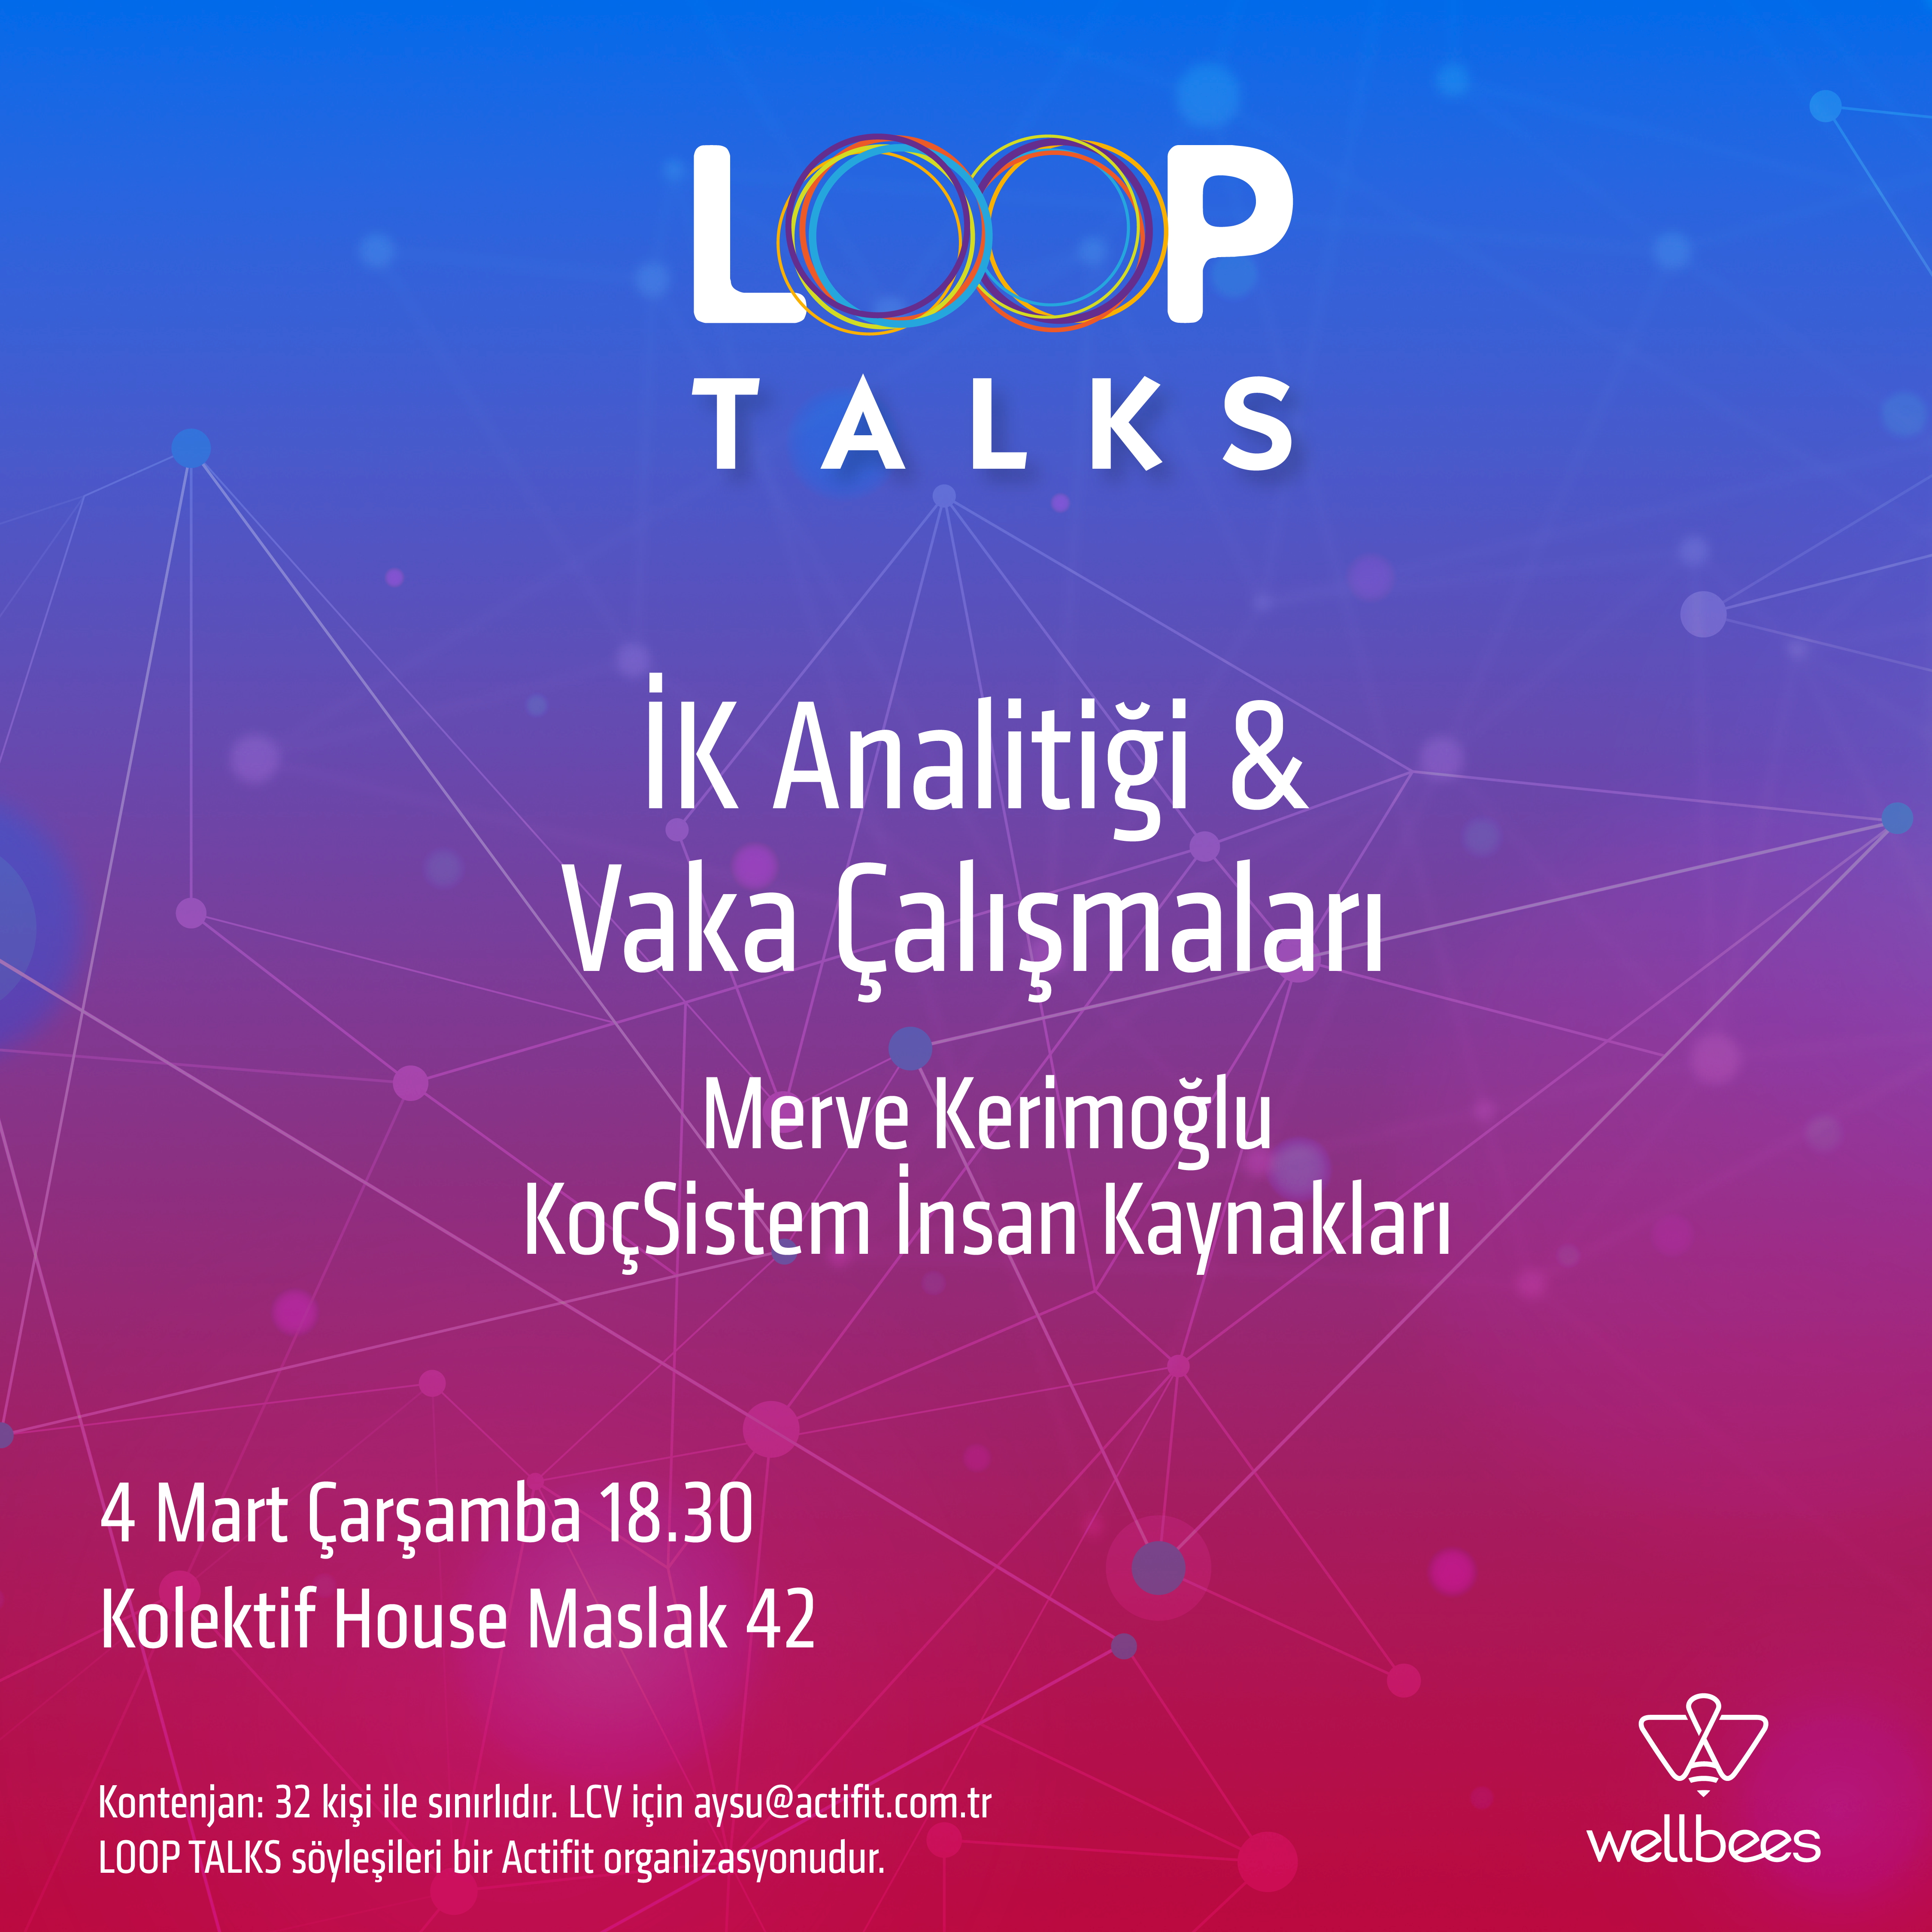 LOOP TALKS II